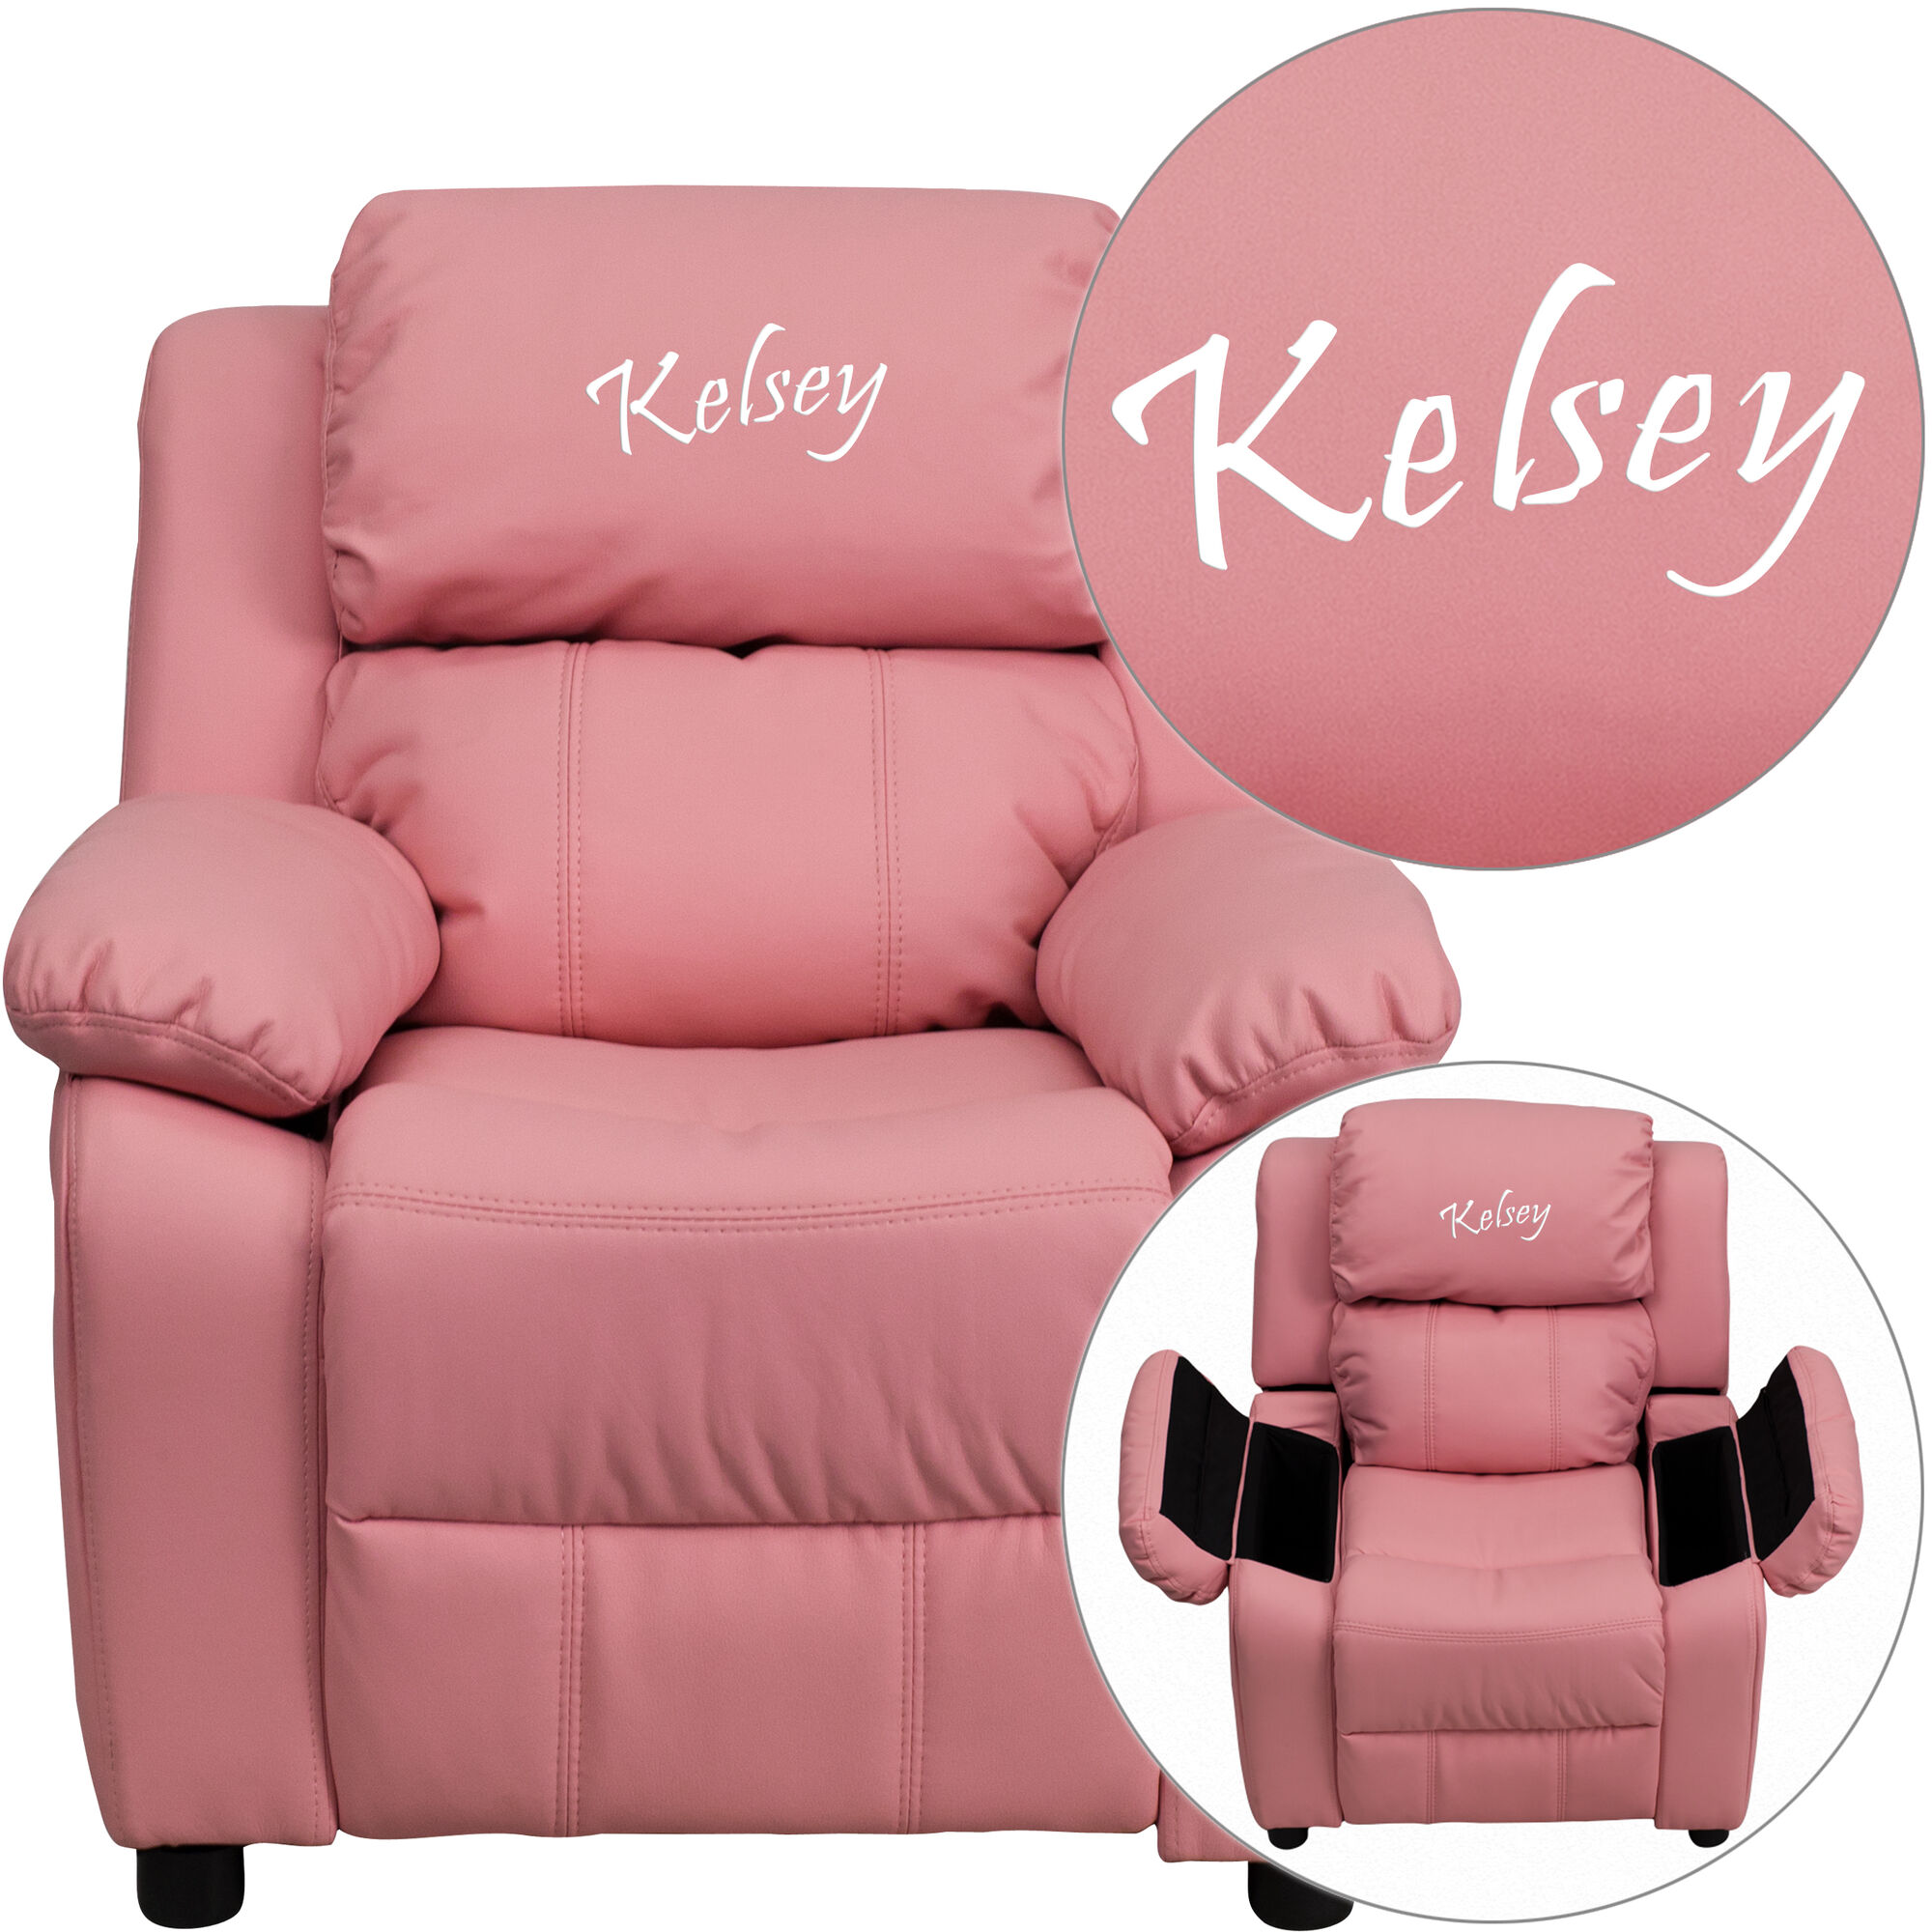 Sensational Personalized Deluxe Padded Pink Vinyl Kids Recliner With Storage Arms Pabps2019 Chair Design Images Pabps2019Com